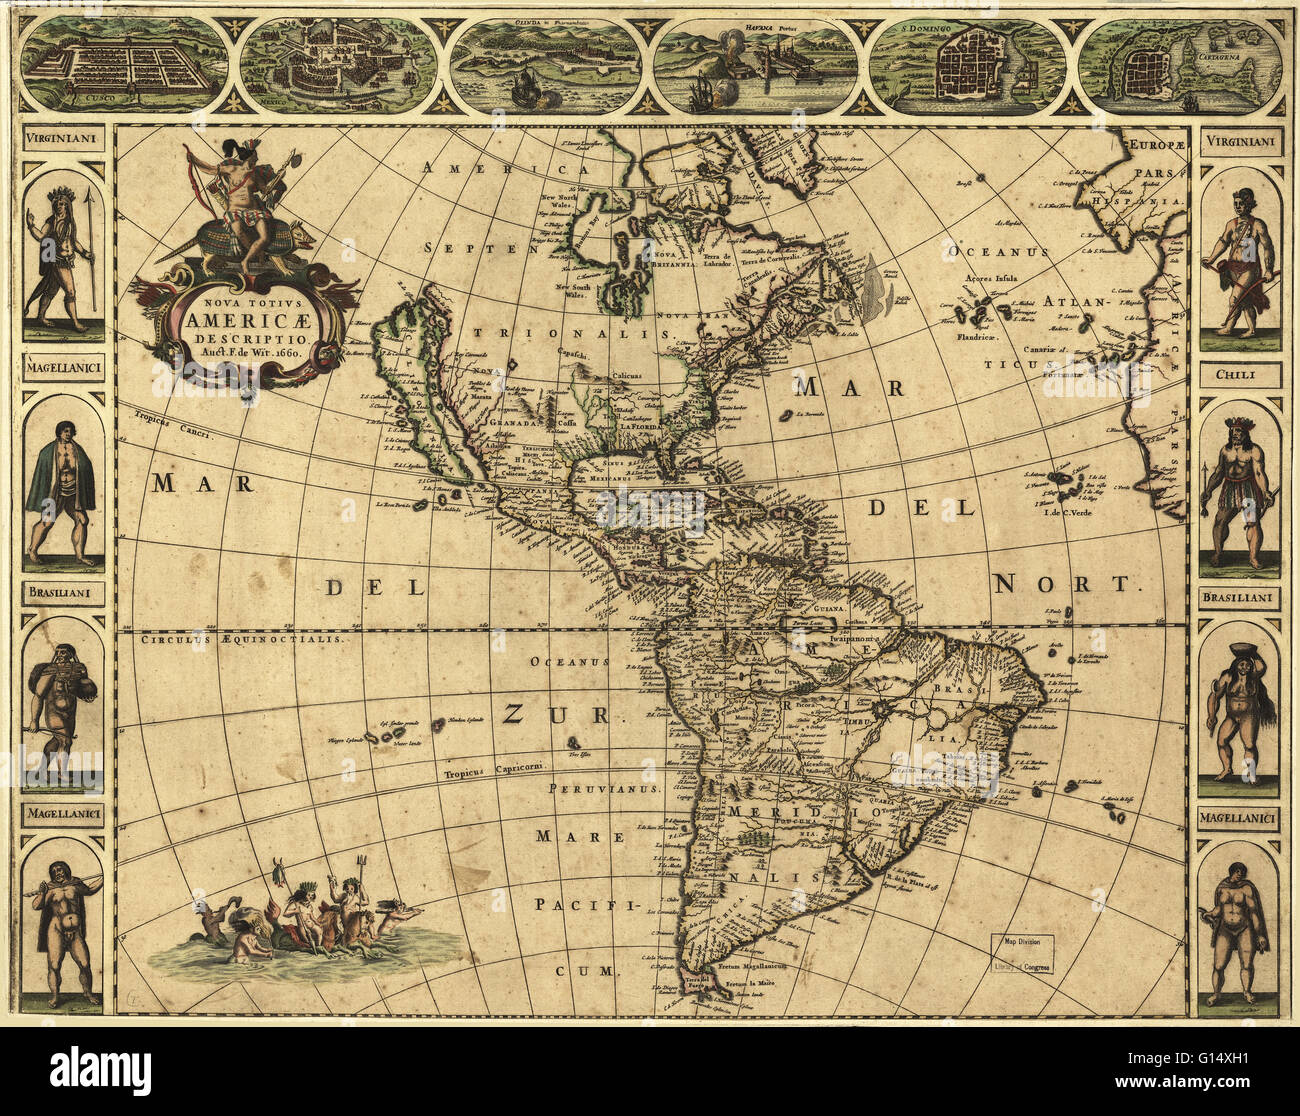 17th century map of the Americas. Published in Amsterdam in 1660